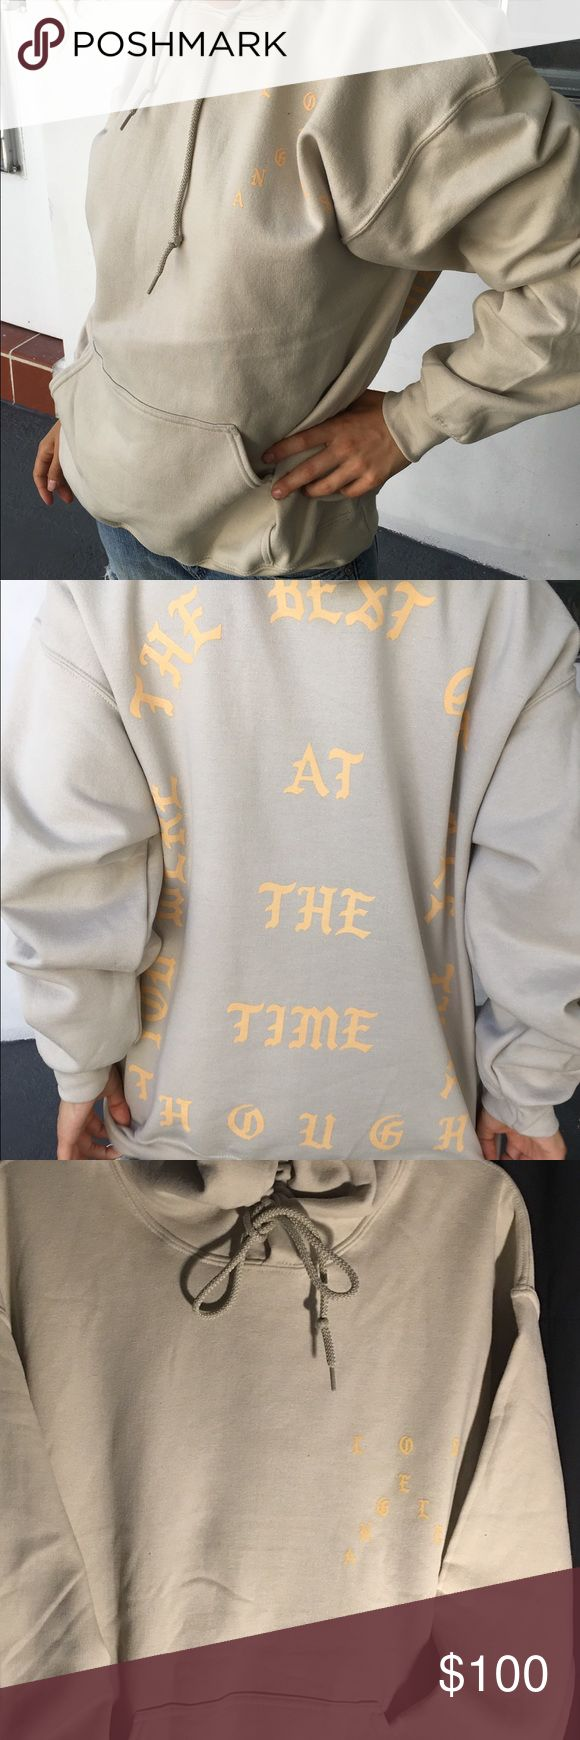 """You Were The Best of All Time, at the Time Though A brand new hoodie purchased from the LA pop up shop back last summer. Never worn, wrinkled from being folded in transport. From Kanye West's Saint Pablo Tour. Size medium with cream colored lettering. Says """"Los Angeles"""" on the front pocket. Will accept reasonable offers Jackets & Coats"""